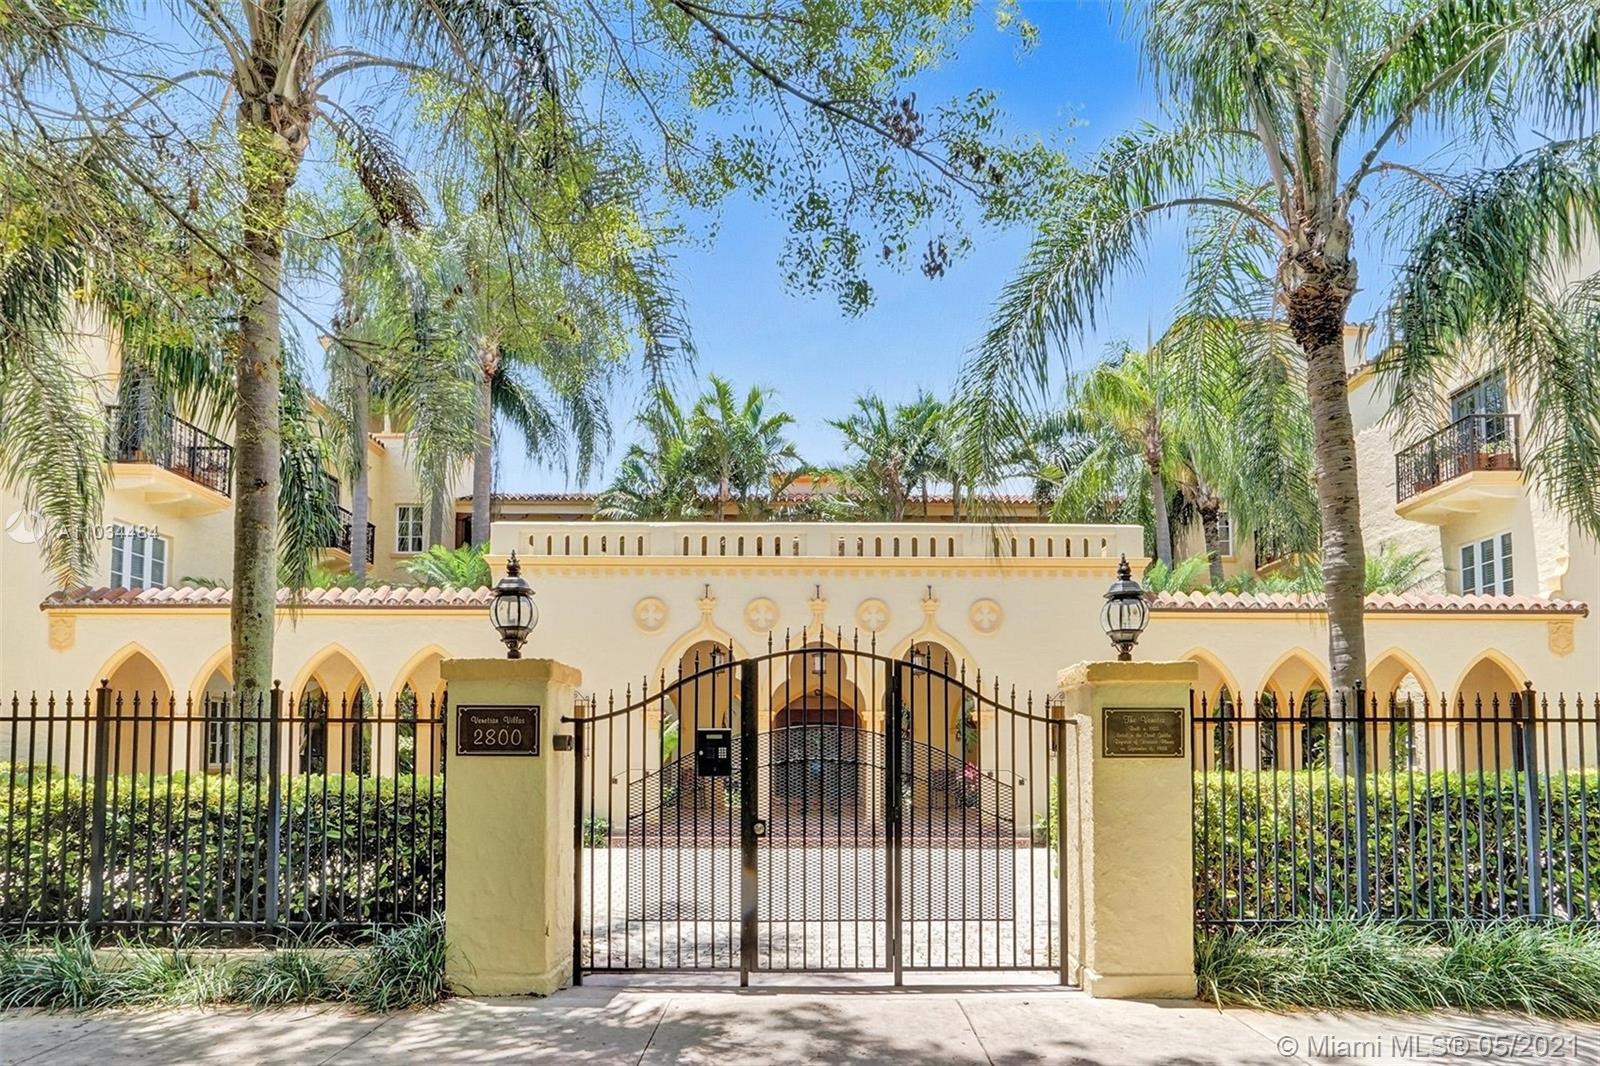 Amazing chance to own a rare gem in Coral Gables. Located on the ground level of a three-story historic building adjacent to the Venetian Pool. Originally built as an apartment building/hotel in 1925, the building was extensively renovated in the 1980s to evolve into a luxury complex with only two units per floor. In addition to four large bedrooms and four and a half baths, the unit includes two living rooms, a formal dining room, a large kitchen with casual dining, a sitting room off the master, and a foyer. Impact windows throughout. Live in luxury in one of the most sought after parts of Miami! Located minutes from the Biltmore Hotel and the University of Miami, directly next to the Venetian Pool and walking distance from Miracle Mile.